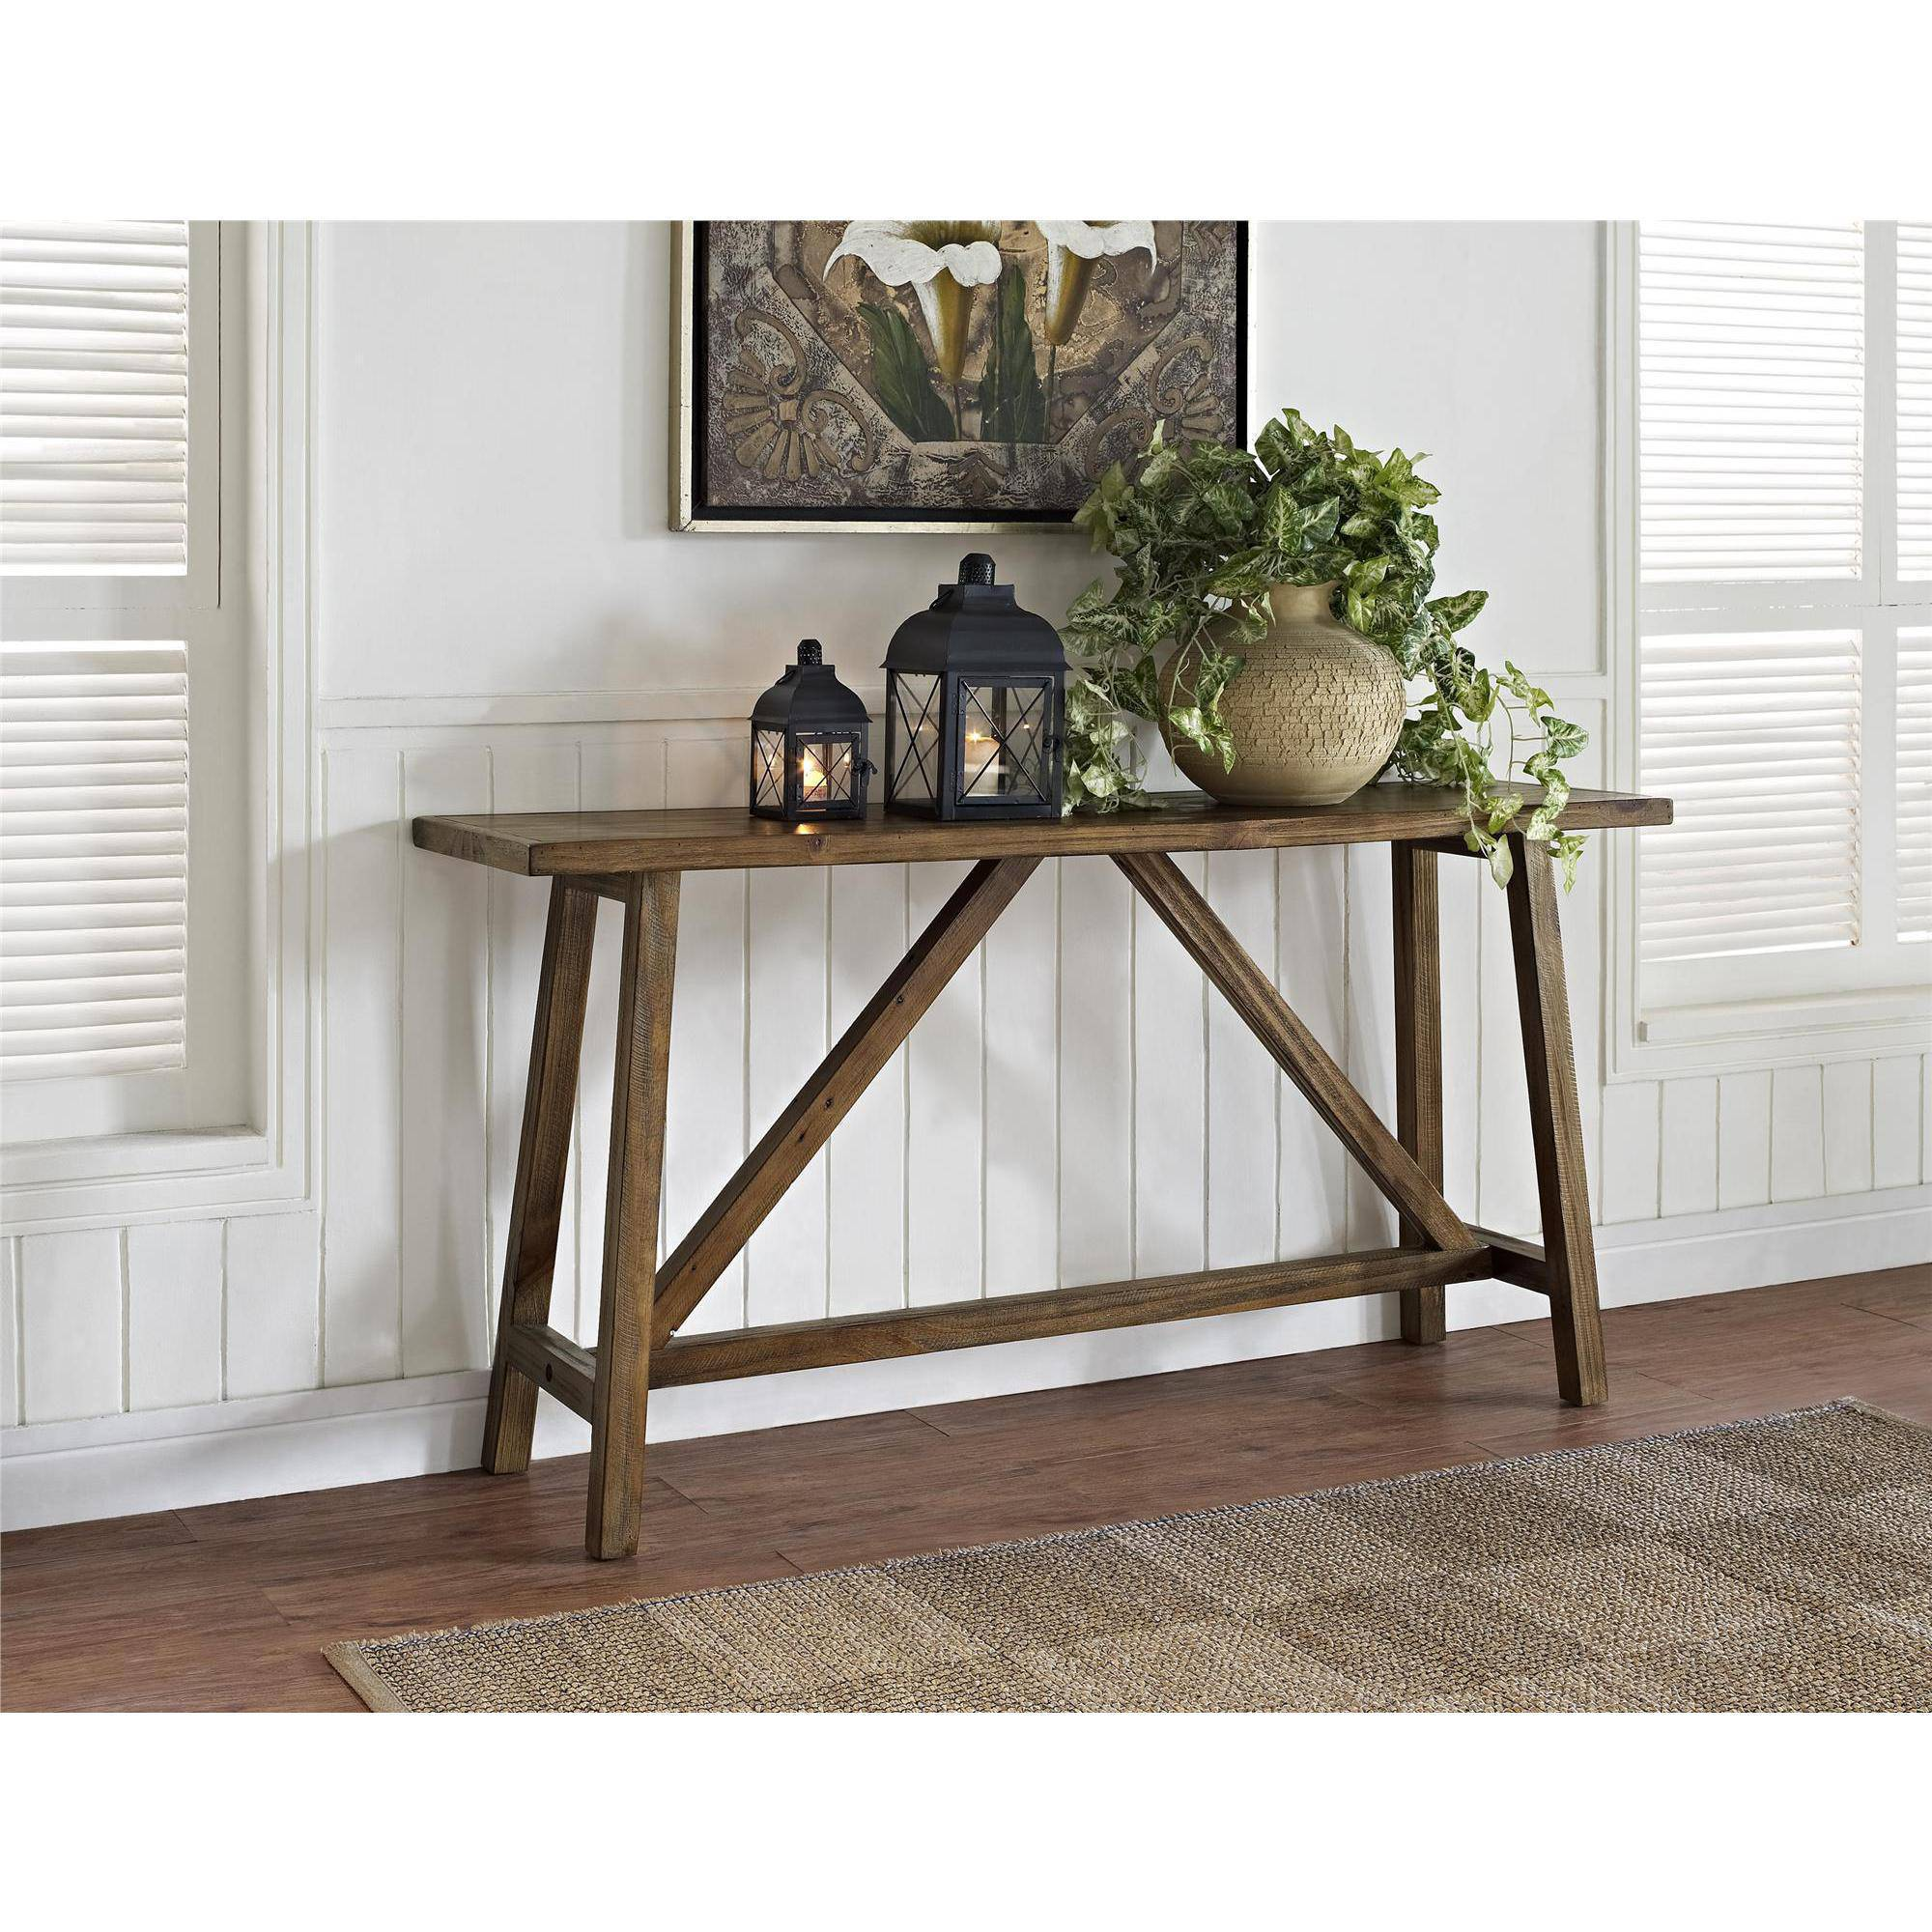 Altra Bennington Console Table, Rustic by Ameriwood